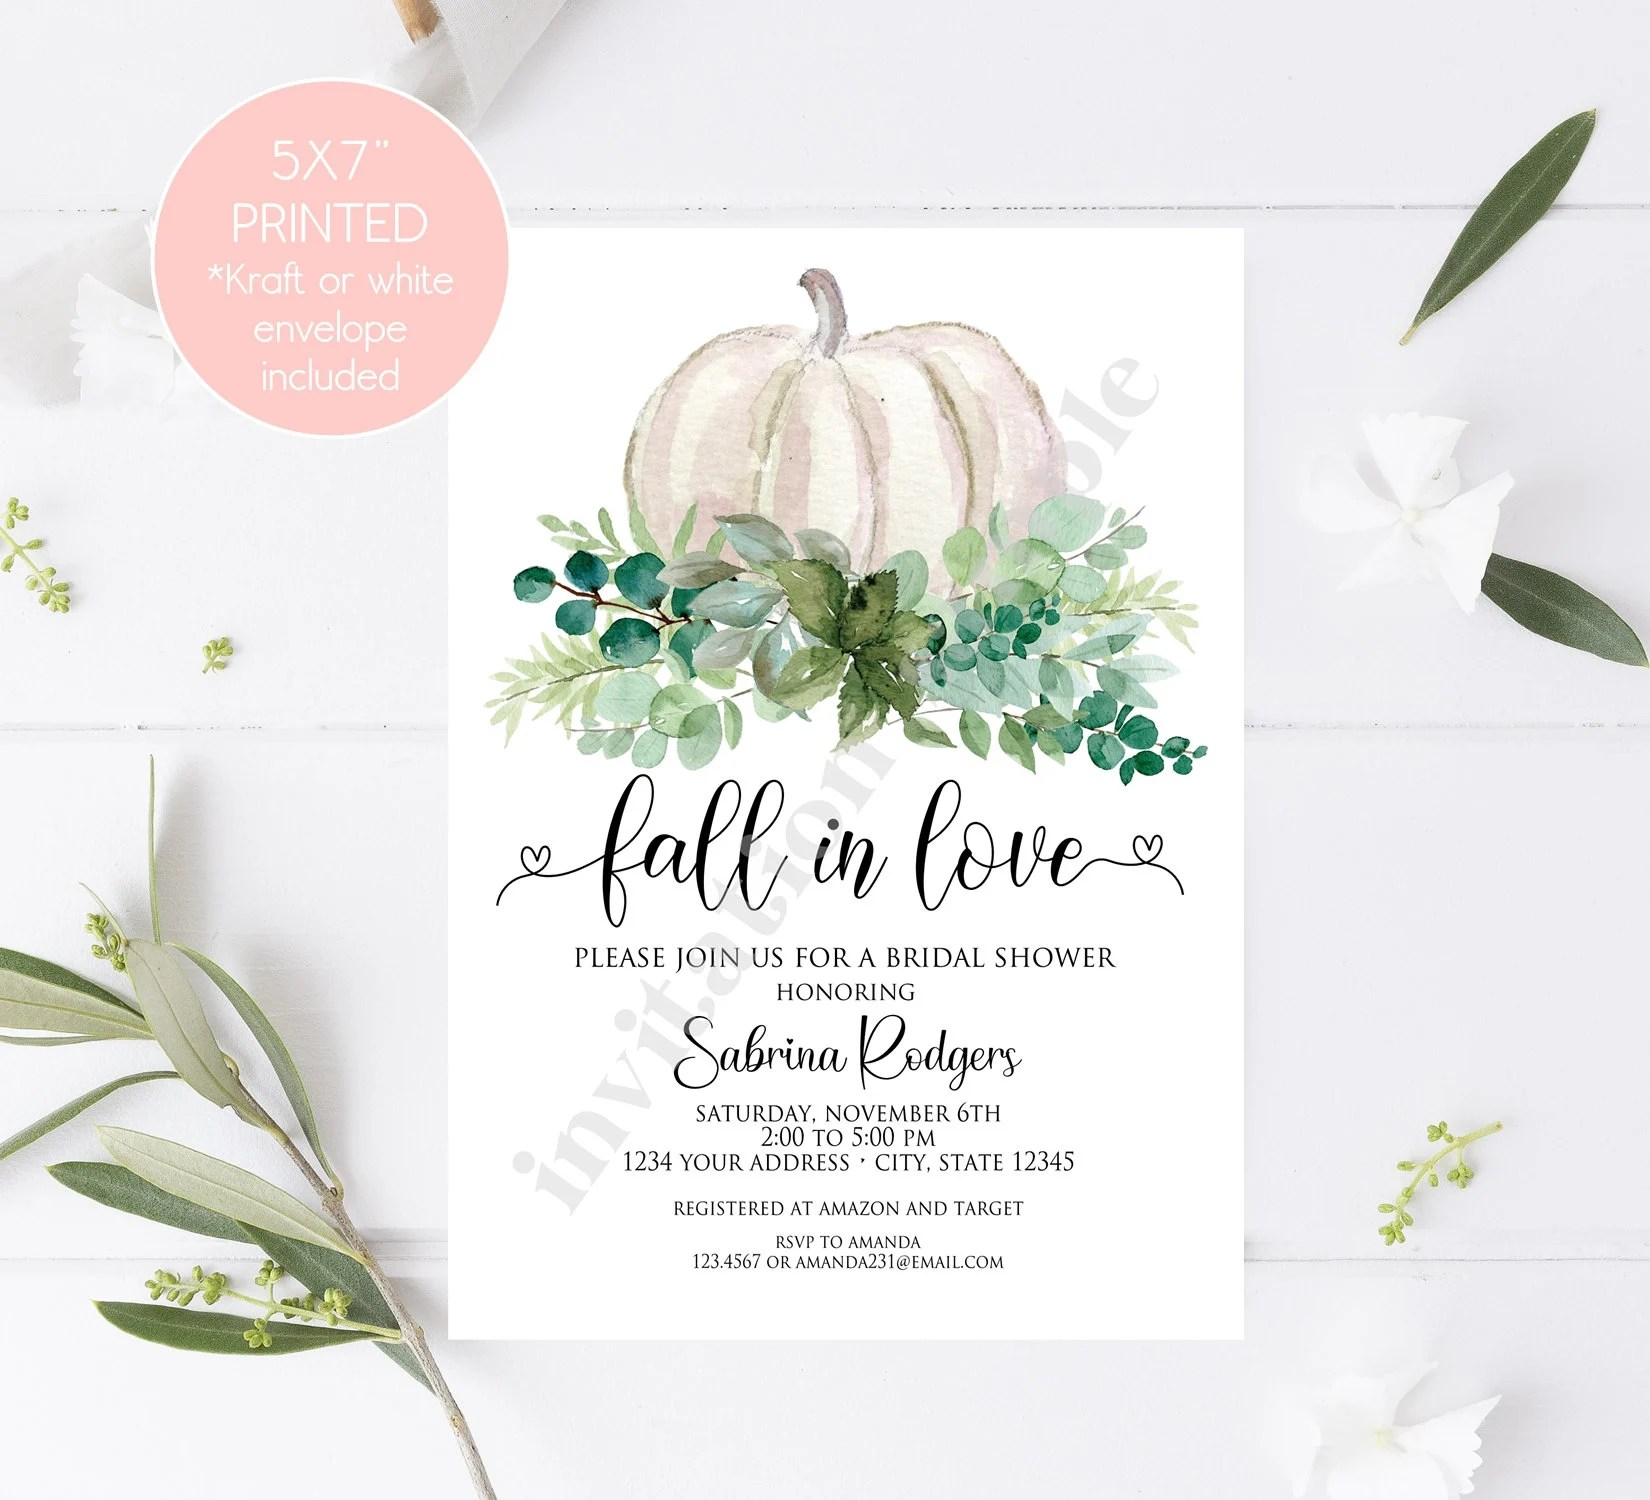 Photo by ivash studio like weddings, modern bridal showers are all about experiences. Custom Printed 5x7 Fall In Love Bridal Shower Invitations Greenery Pumpkin Bridal Shower Invitation With Envelope By Paper Monkey Company Catch My Party